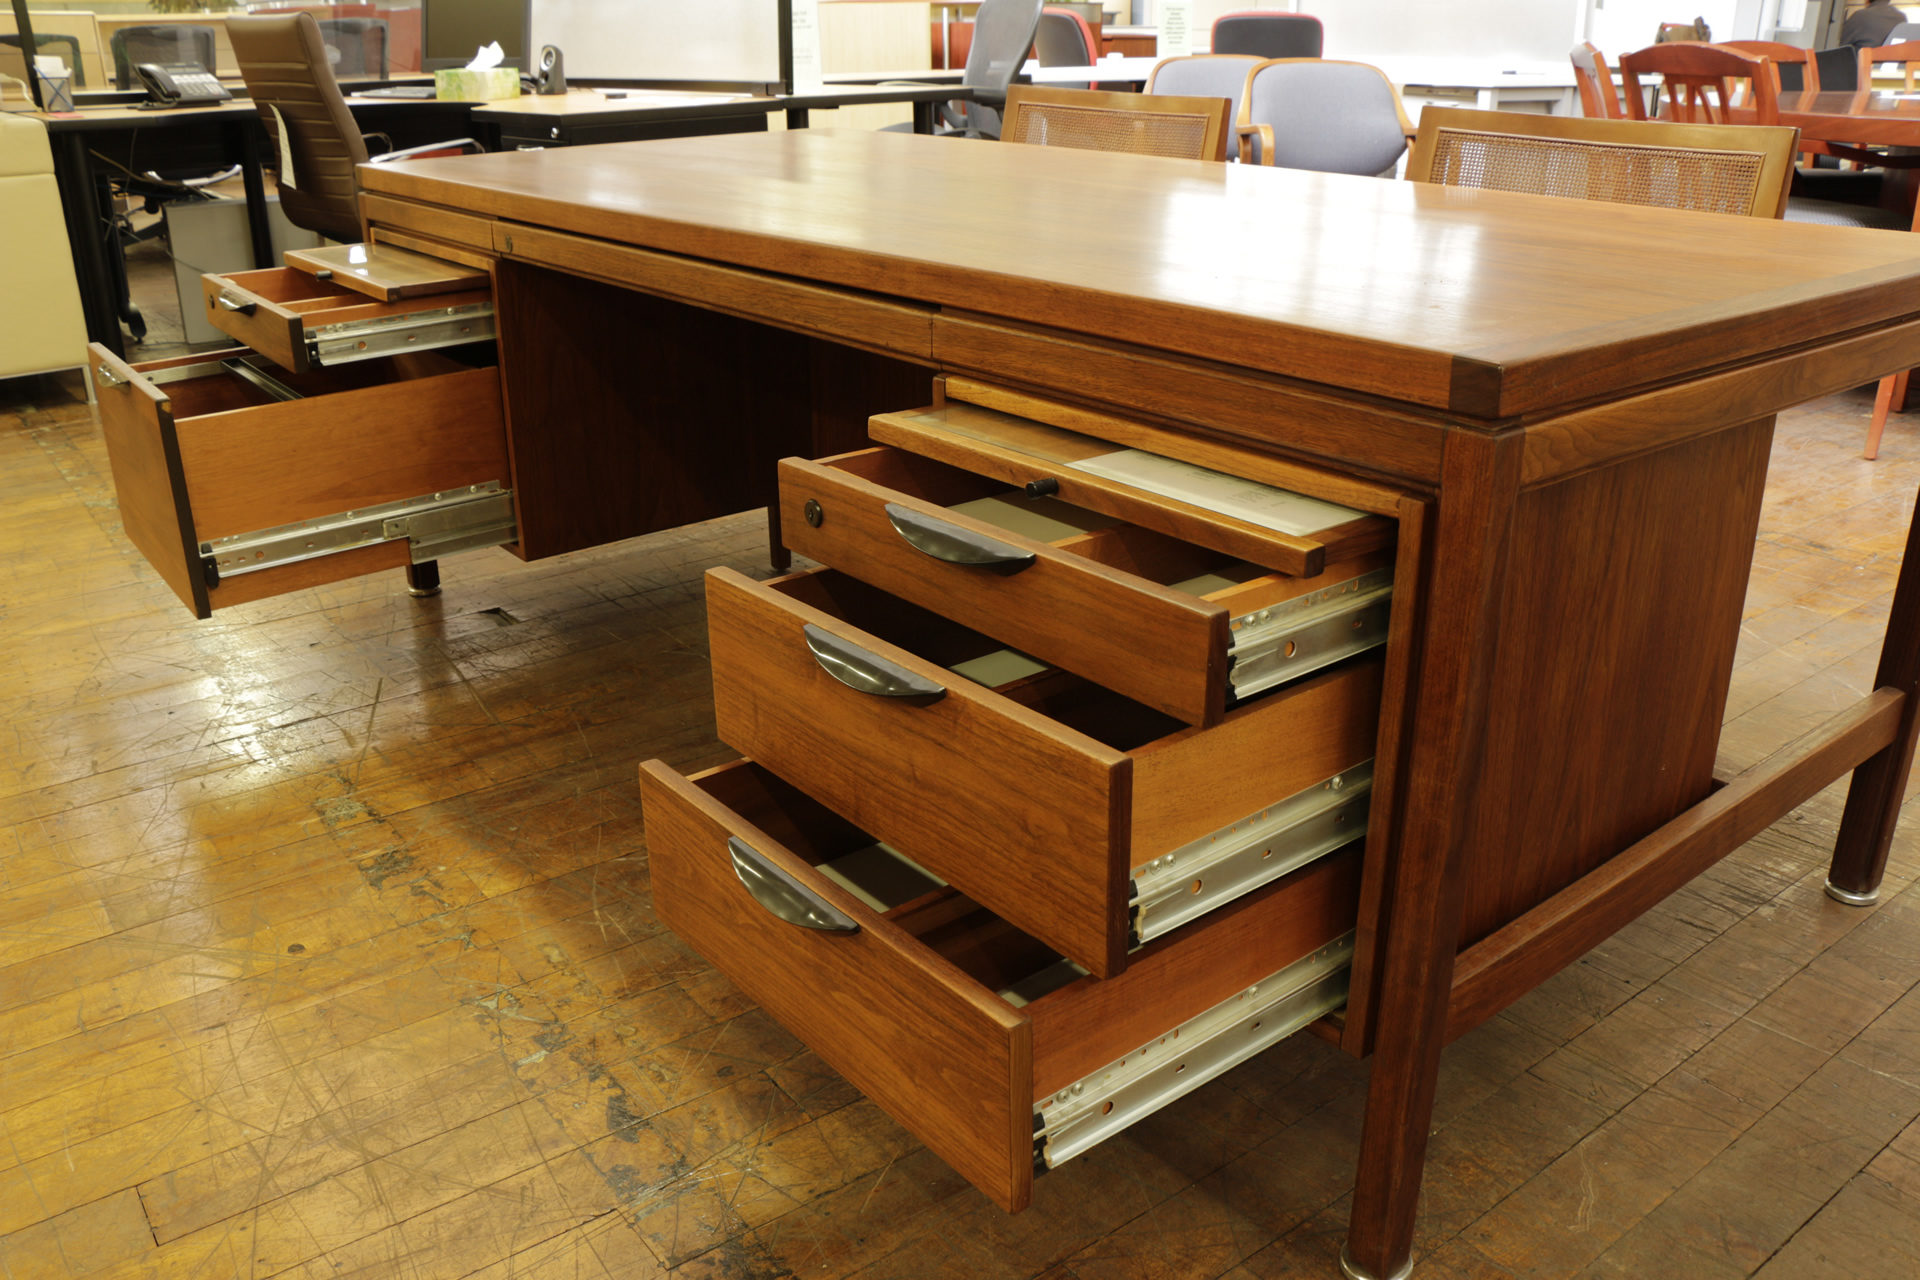 peartreeofficefurniture_peartreeofficefurniture_mg_1970.jpg